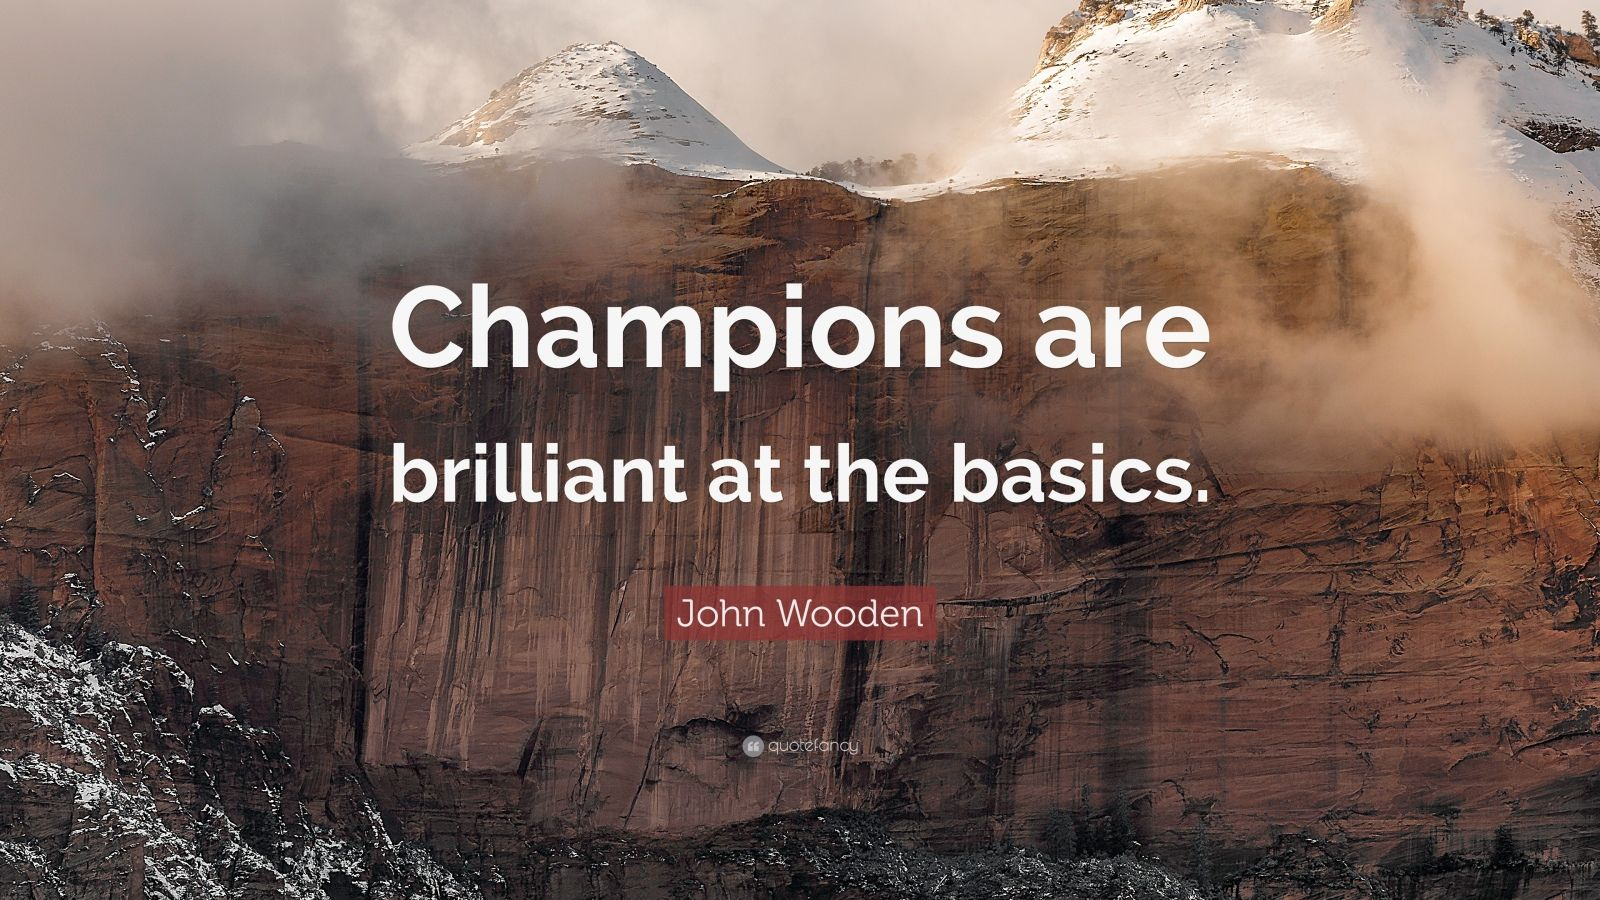 Beautiful Quotes Wallpapers On Life John Wooden Quote Champions Are Brilliant At The Basics